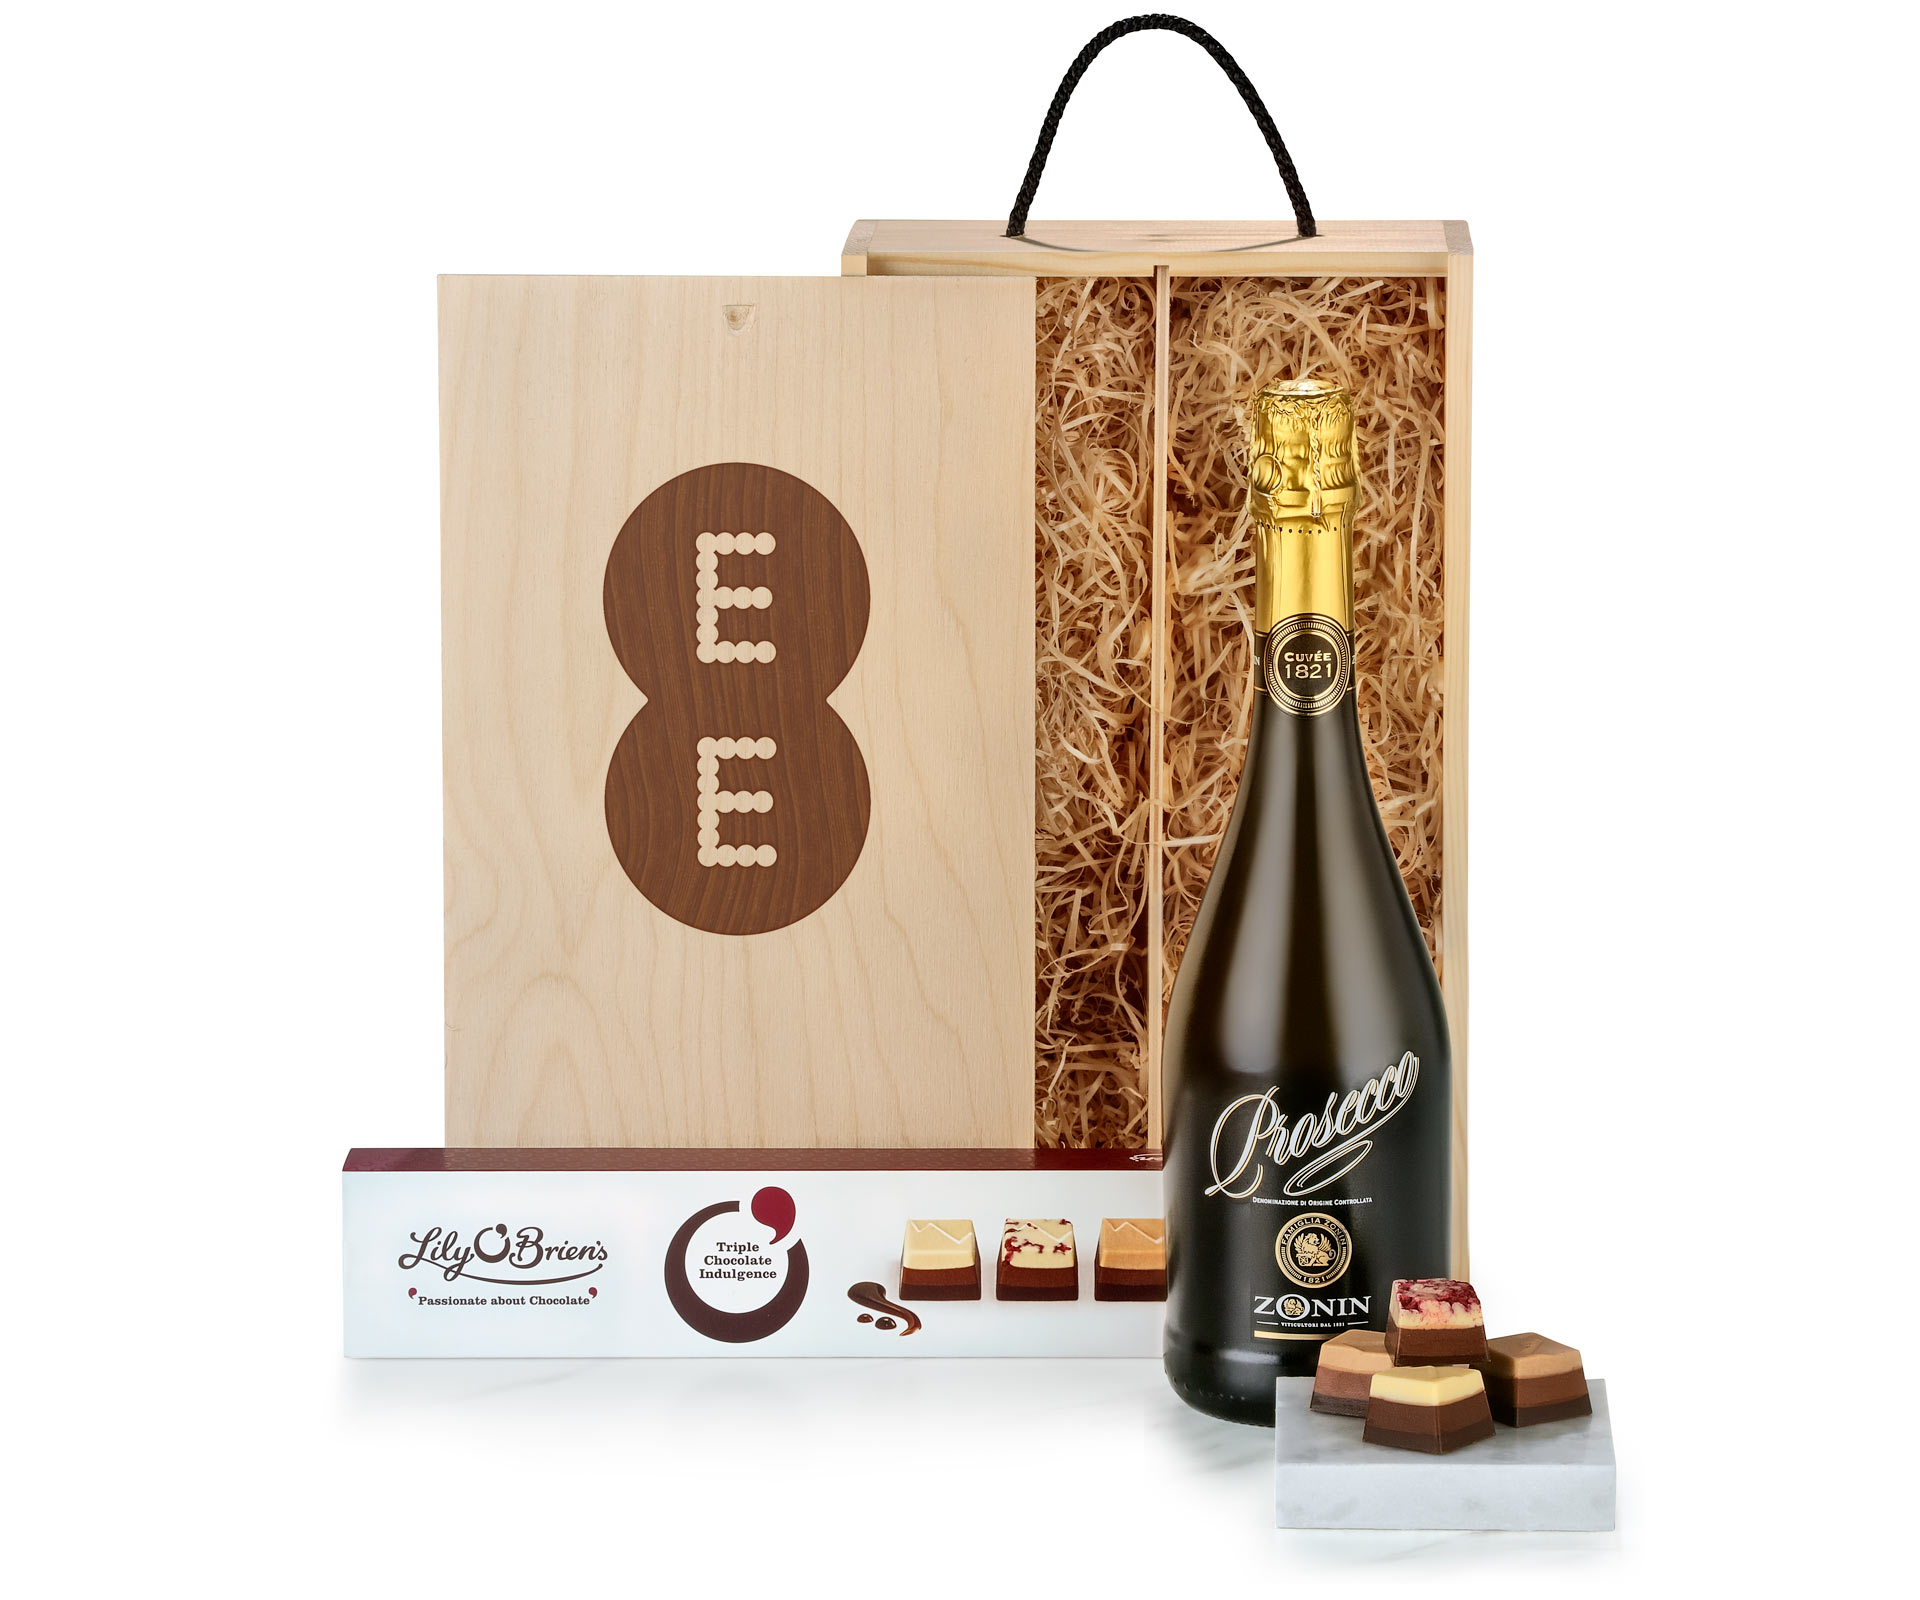 Prosecco & Chocolates in Bespoke Branded Gift Box